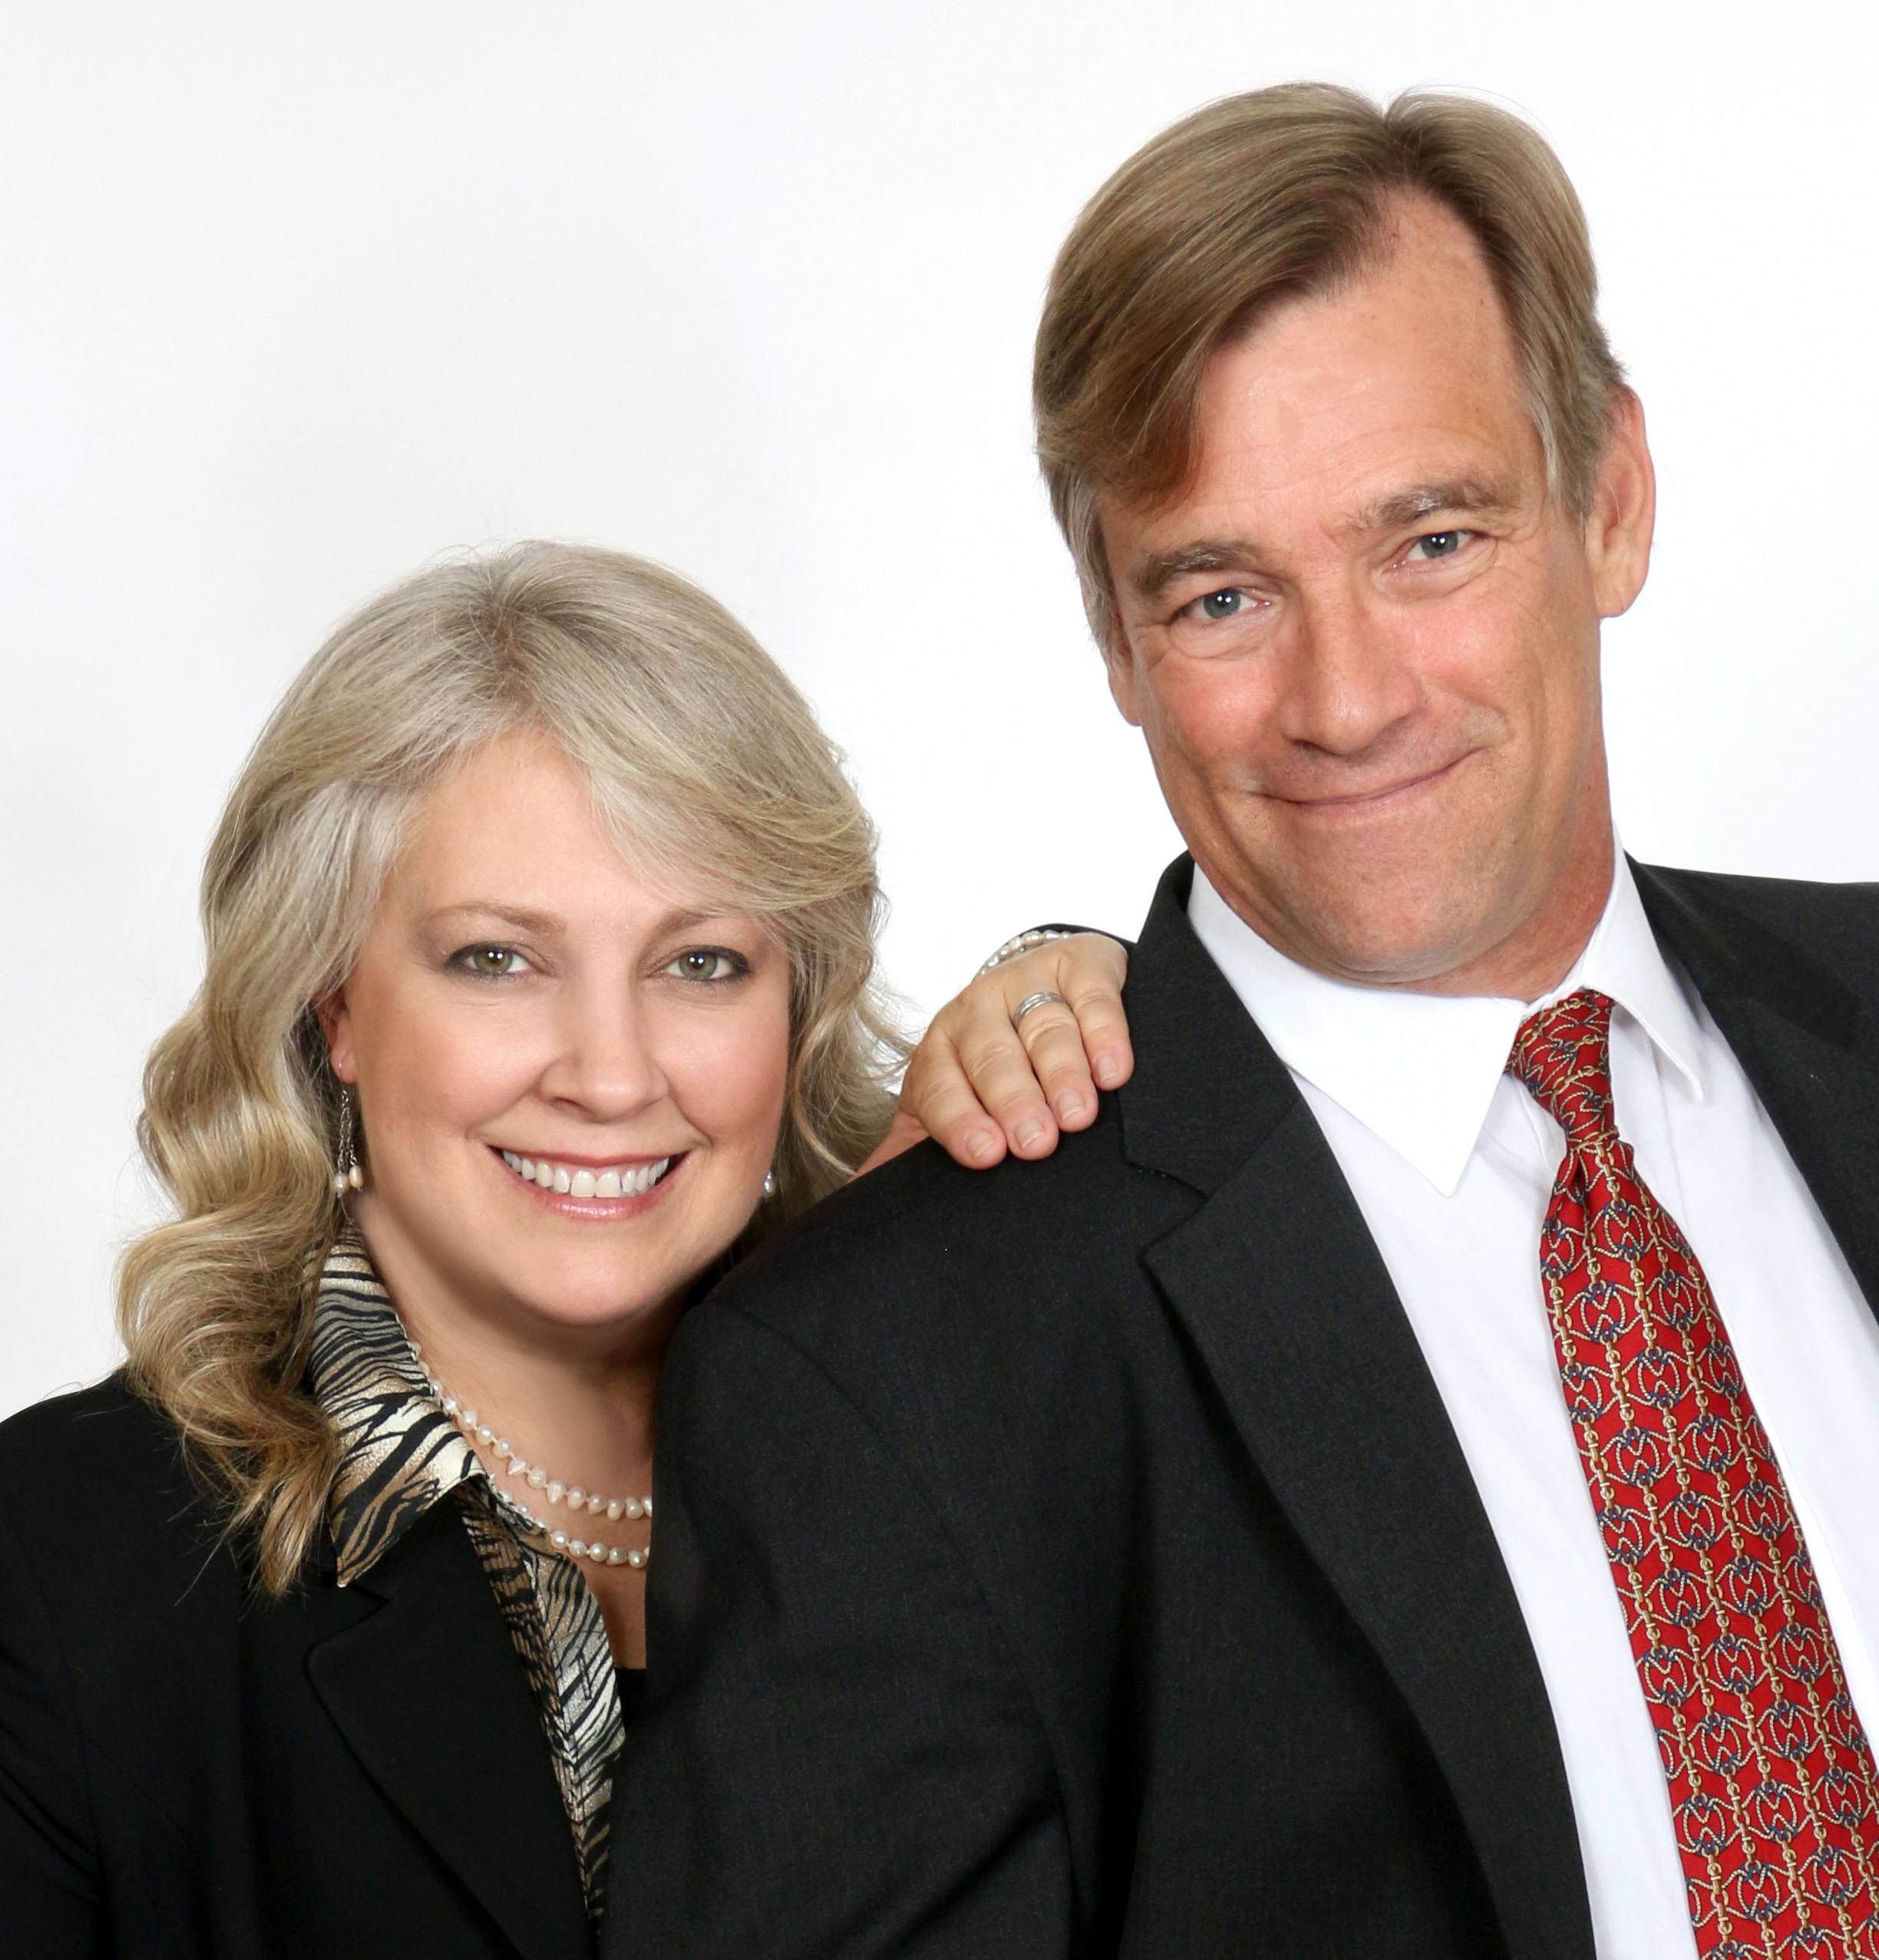 EXIT Heritage Realty Welcomes New Agents Debbie & Chris Cloud